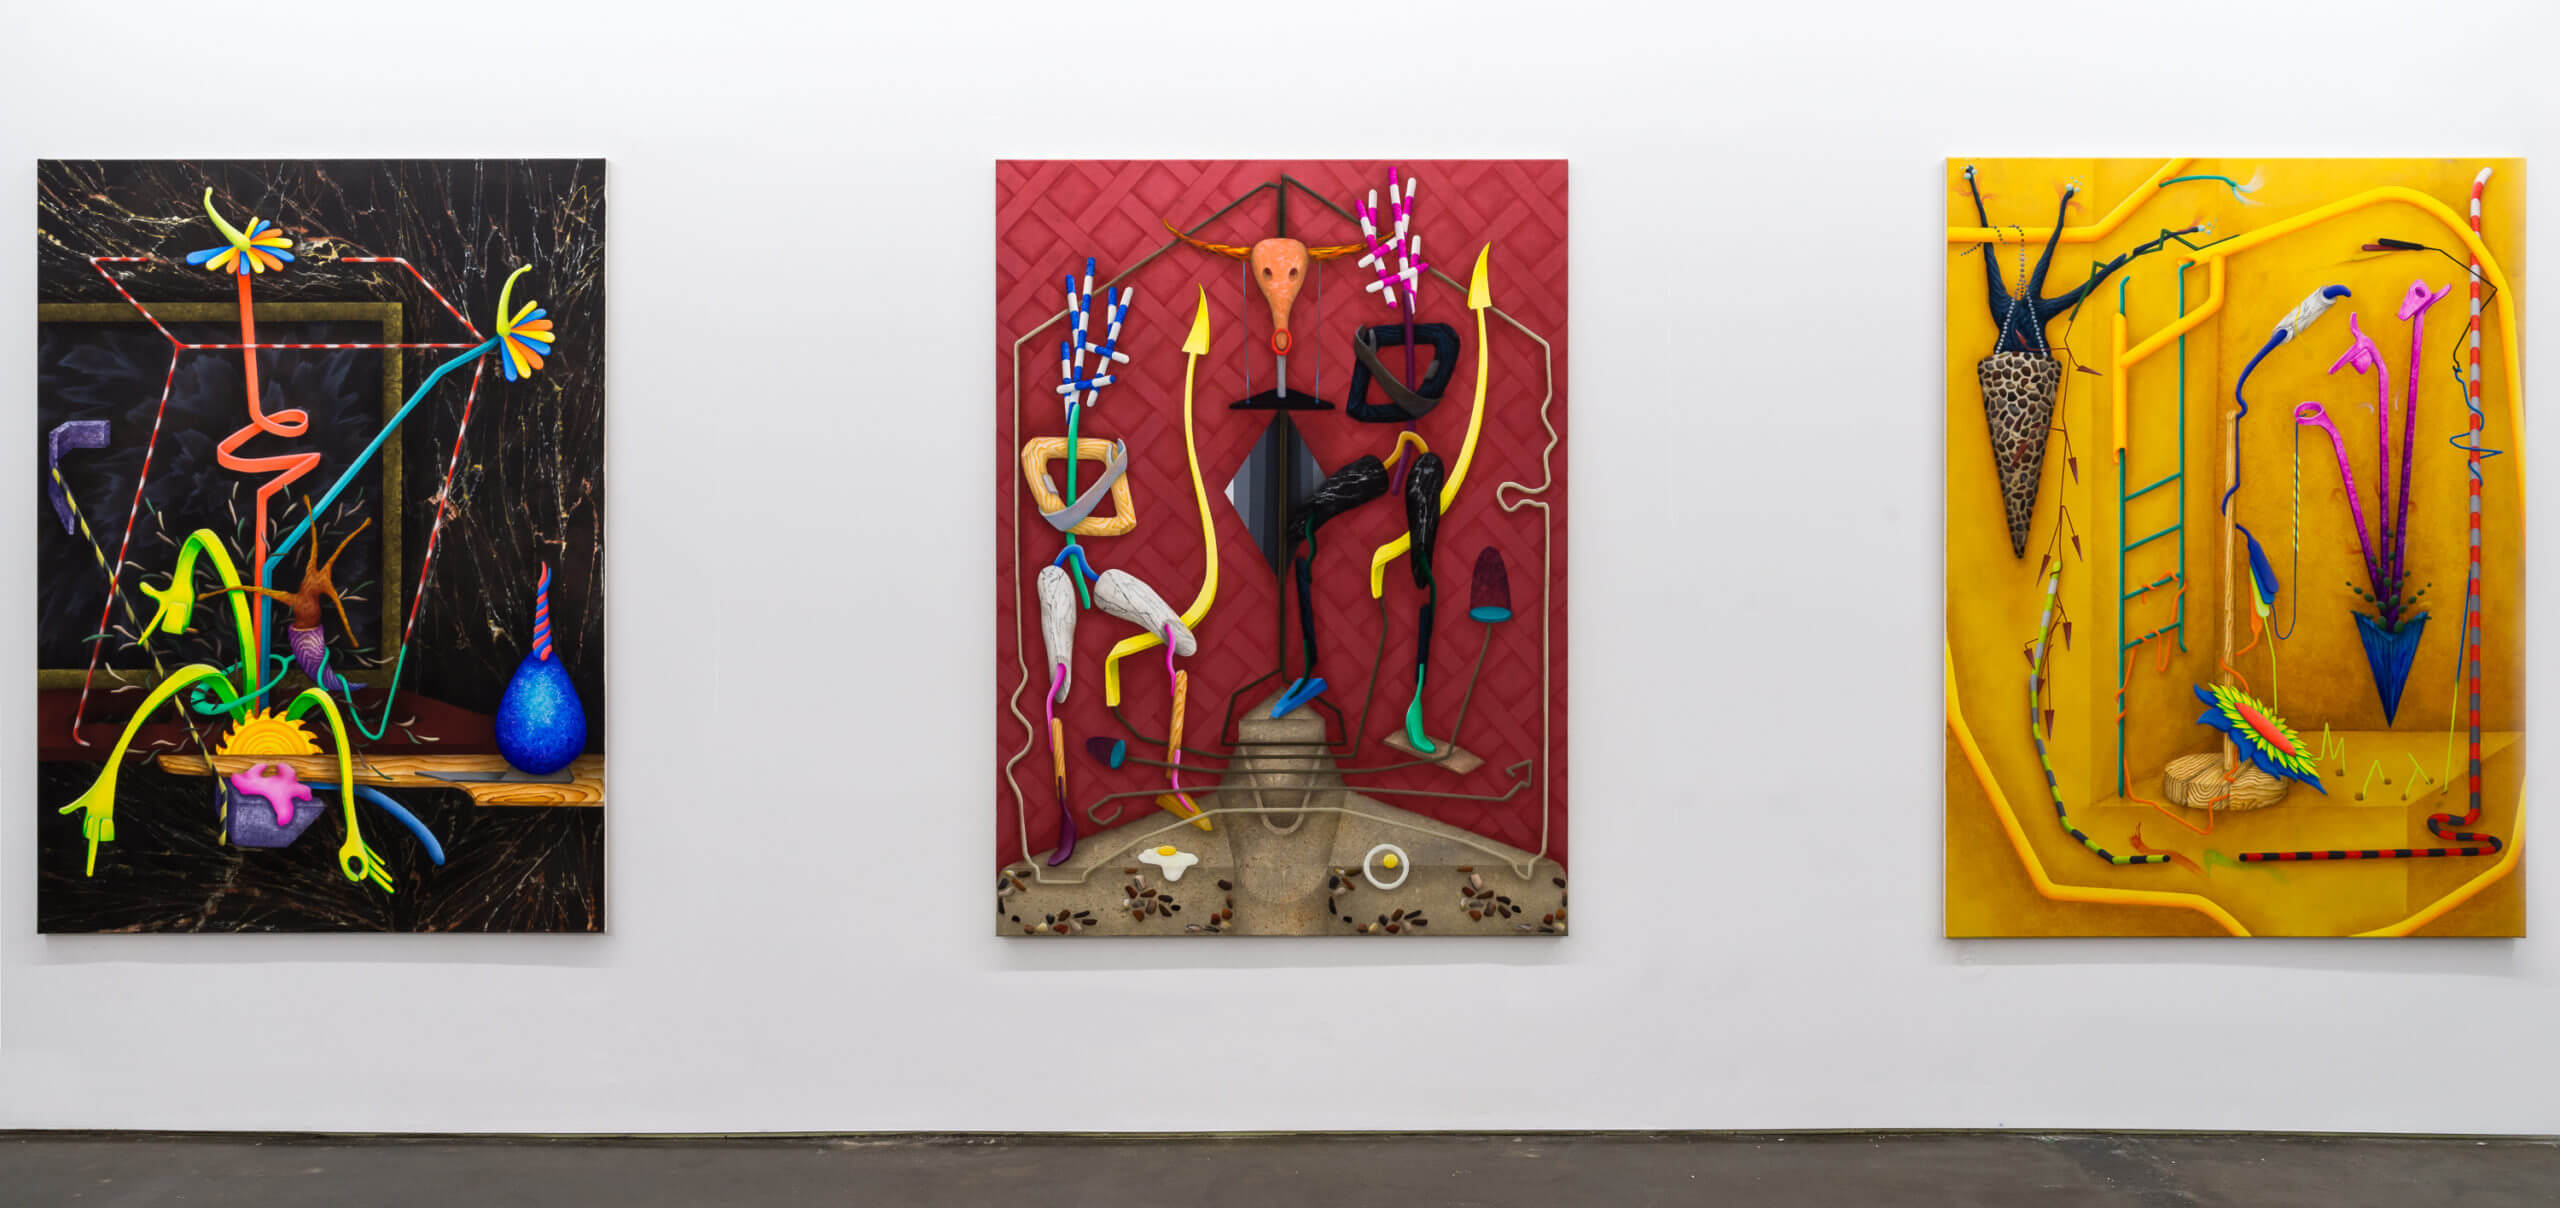 Installation view »Figure of speech« at Artuner New York